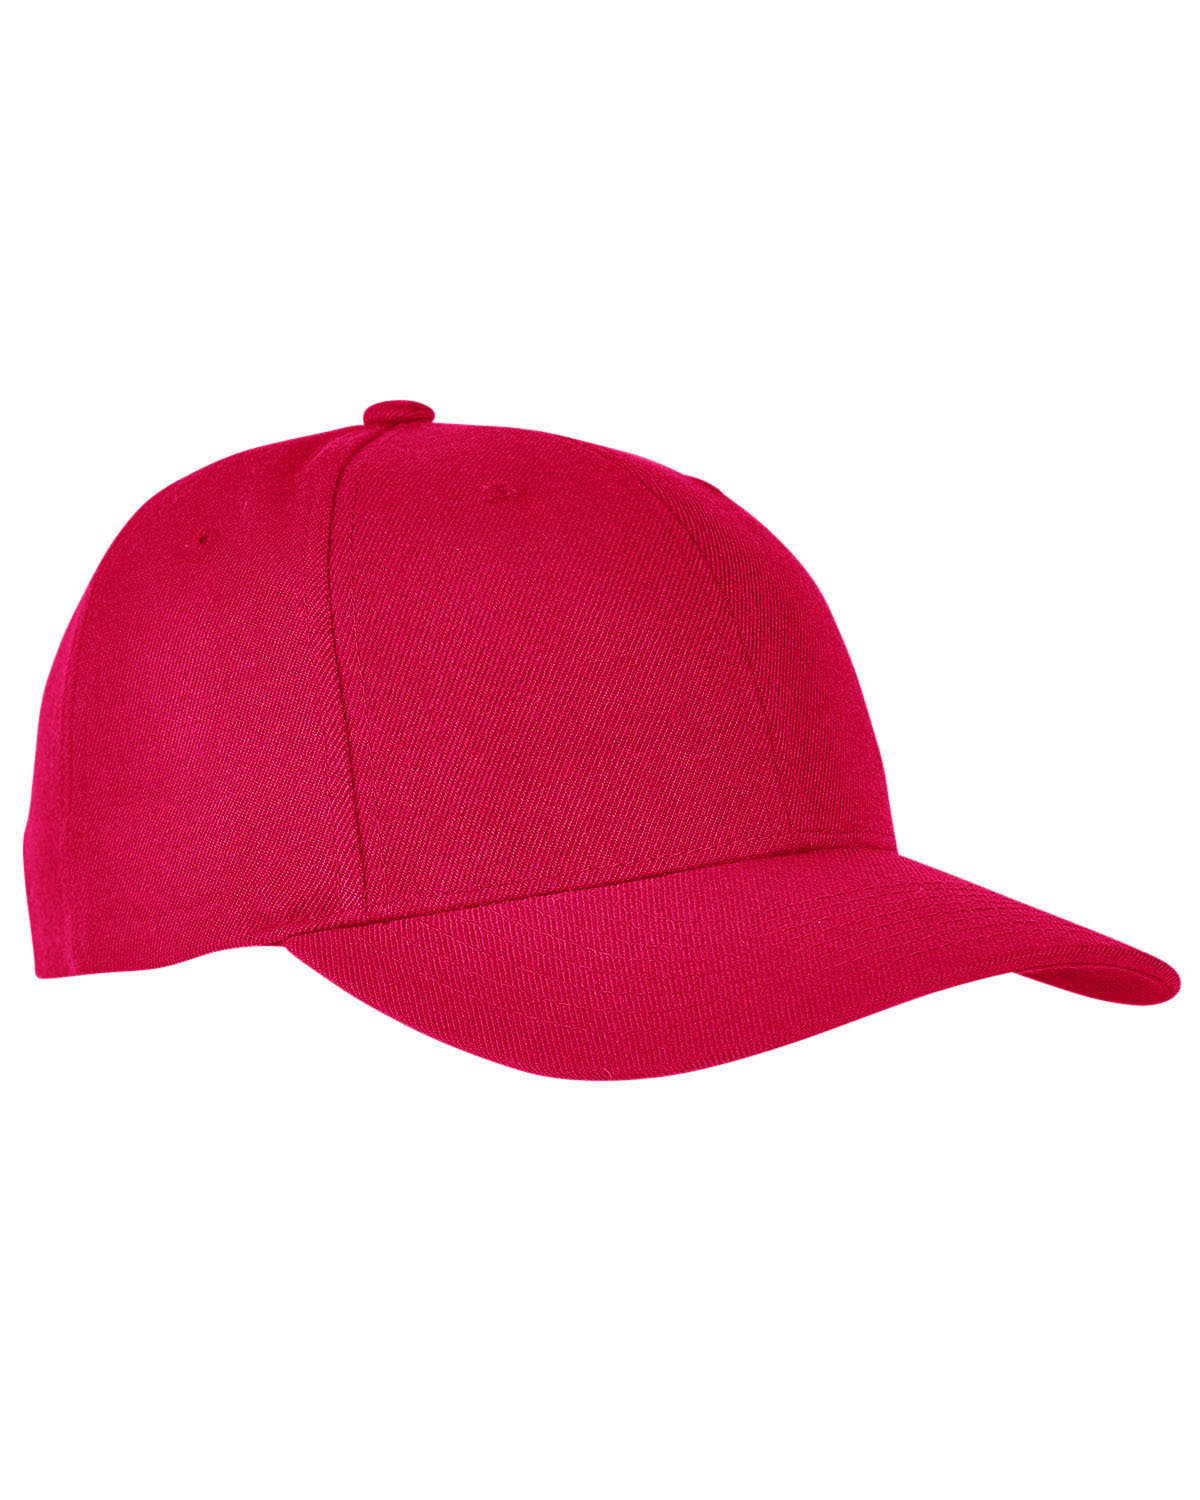 Yupoong Premium Curved Visor Snapback RED